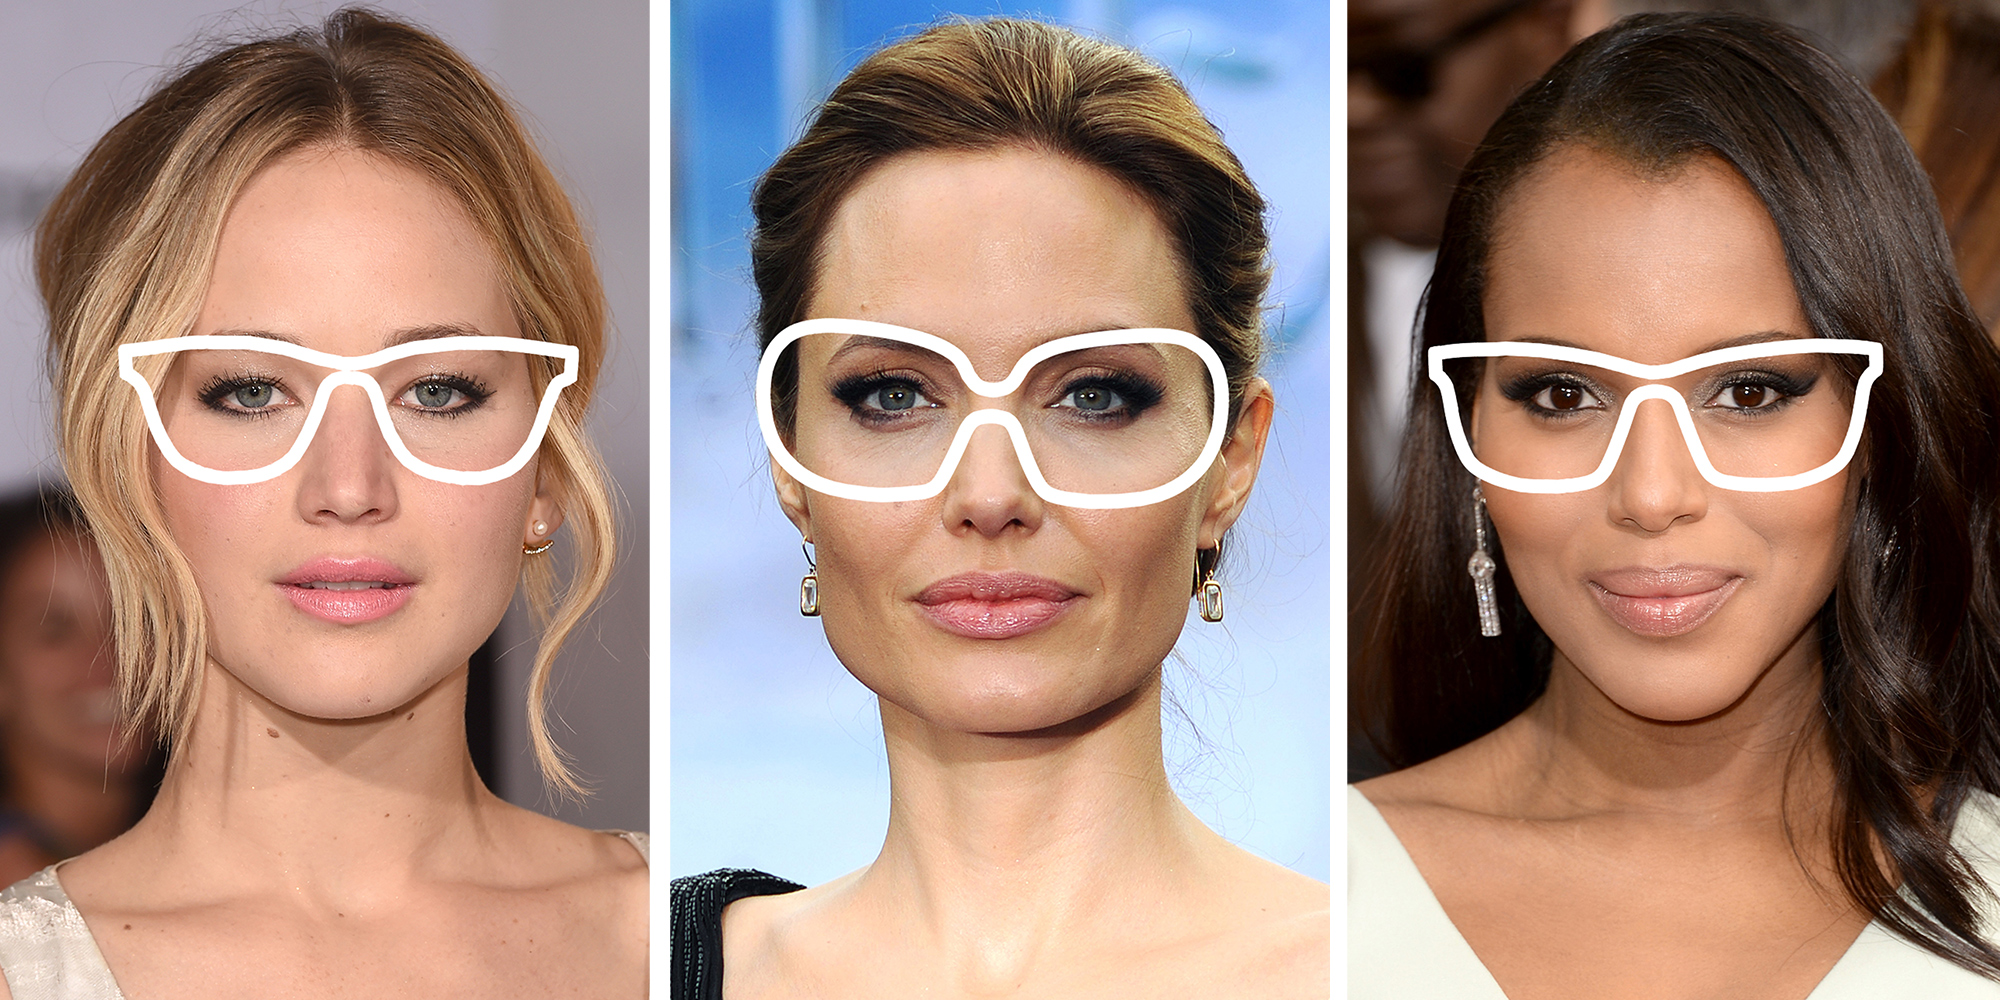 Sunglasses For Face Shape Quiz : 12 Best Sunglasses for Every Face Shape - How to Choose ...